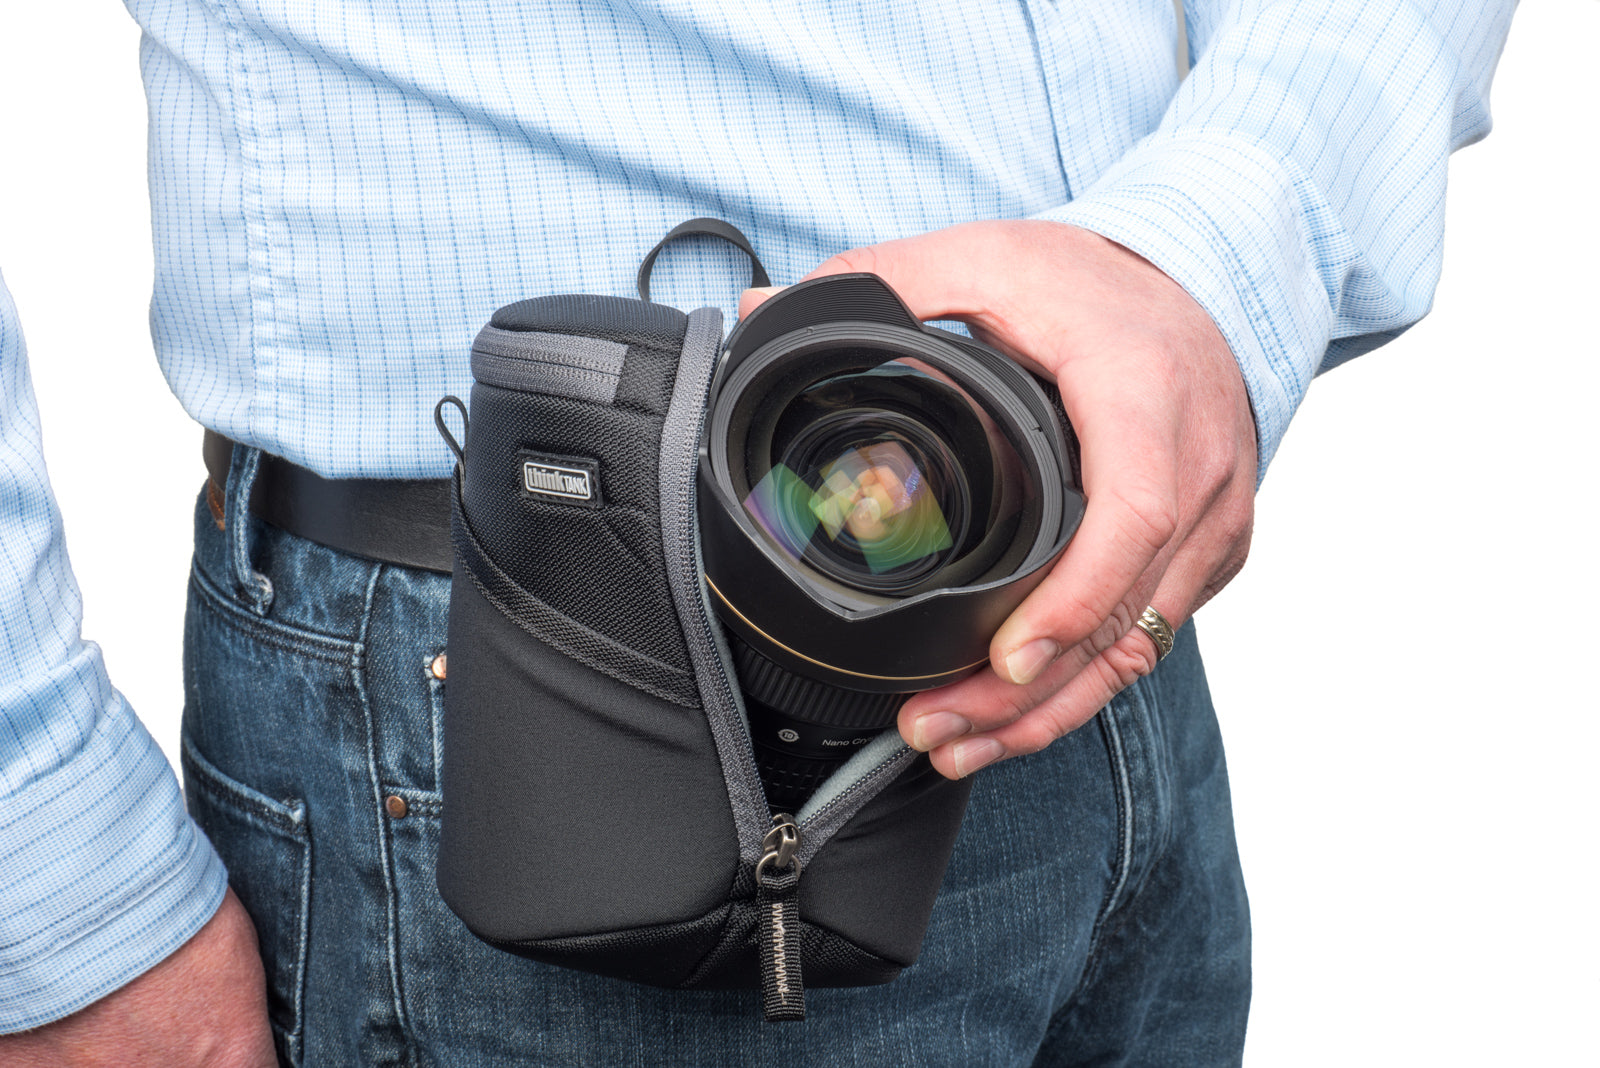 Lens Case Duo 20 Protective For Dslr And Mirrorless Lenses Leather Denim Strap Kamera Dlsr Slr Canon Fujifilm Sony